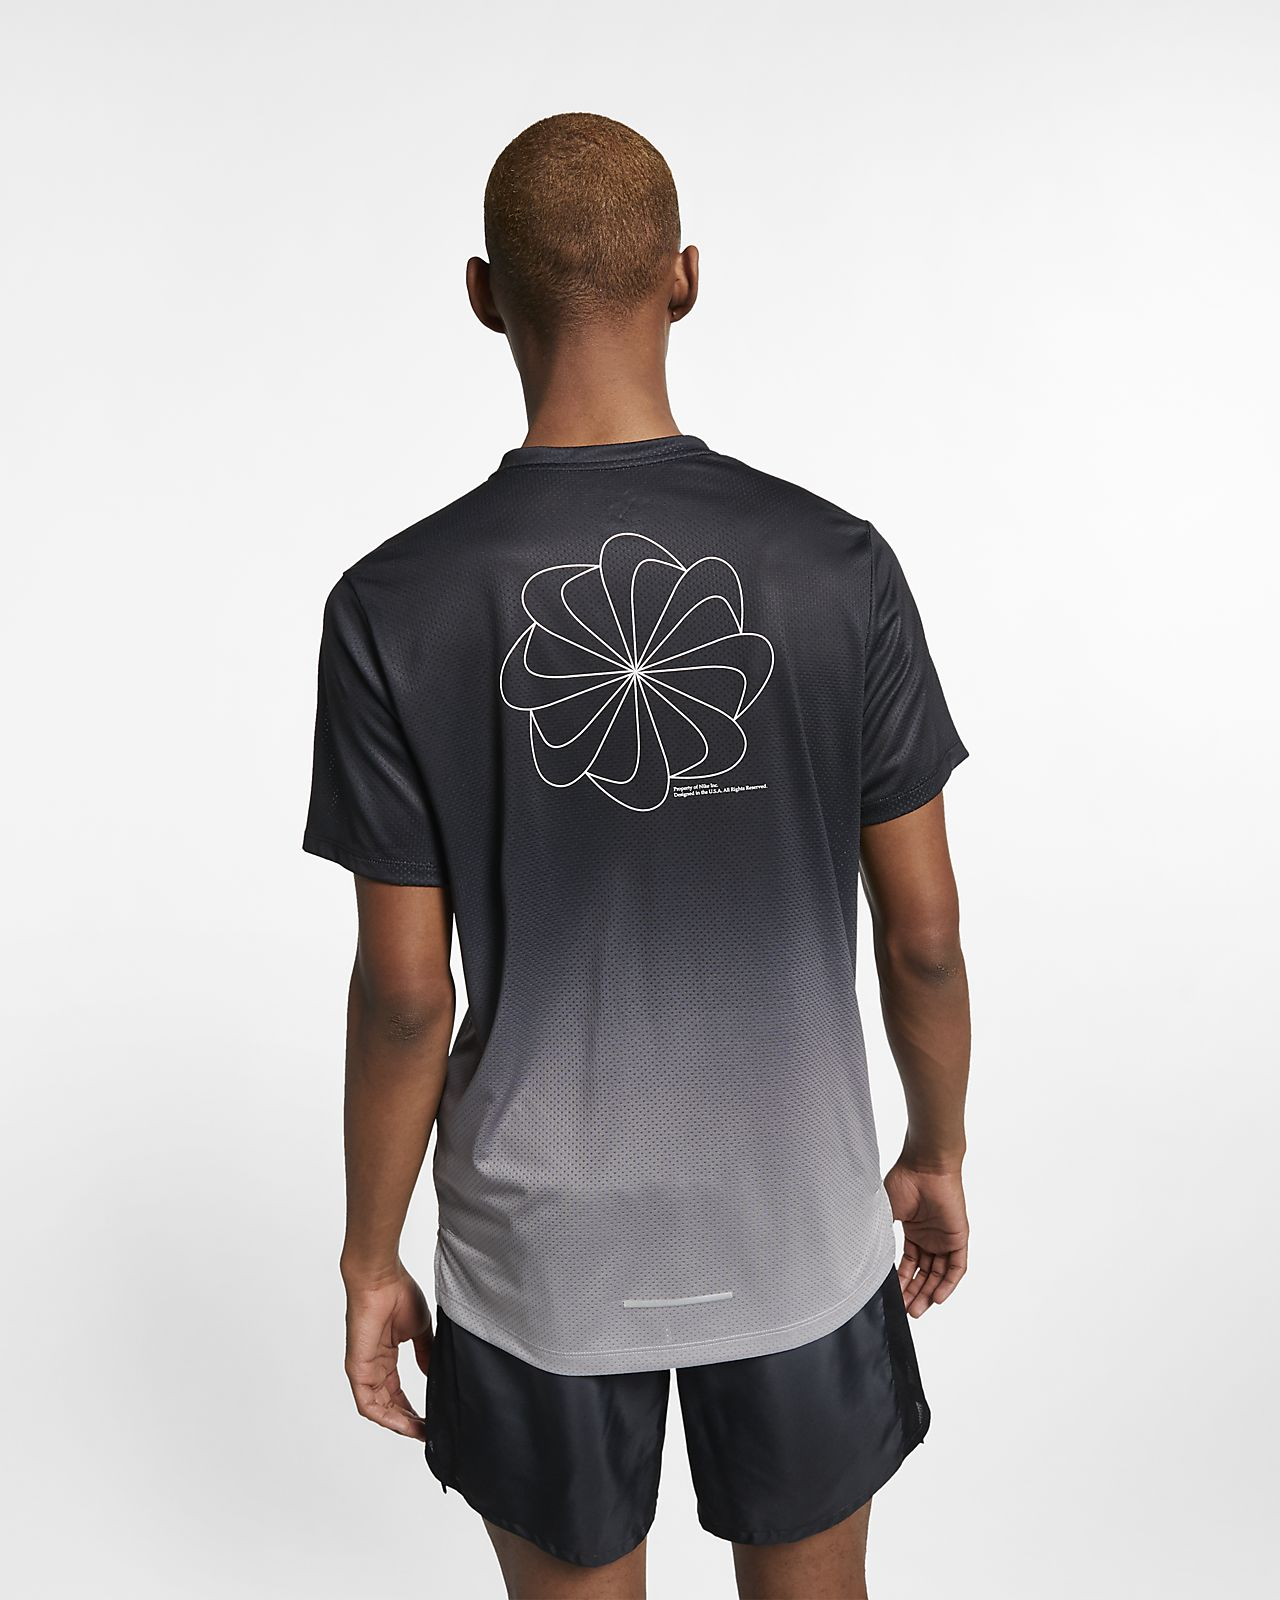 edc141e07cc1 Nike Dri-FIT Miler Men s Short-Sleeve Printed Running Top. Nike.com